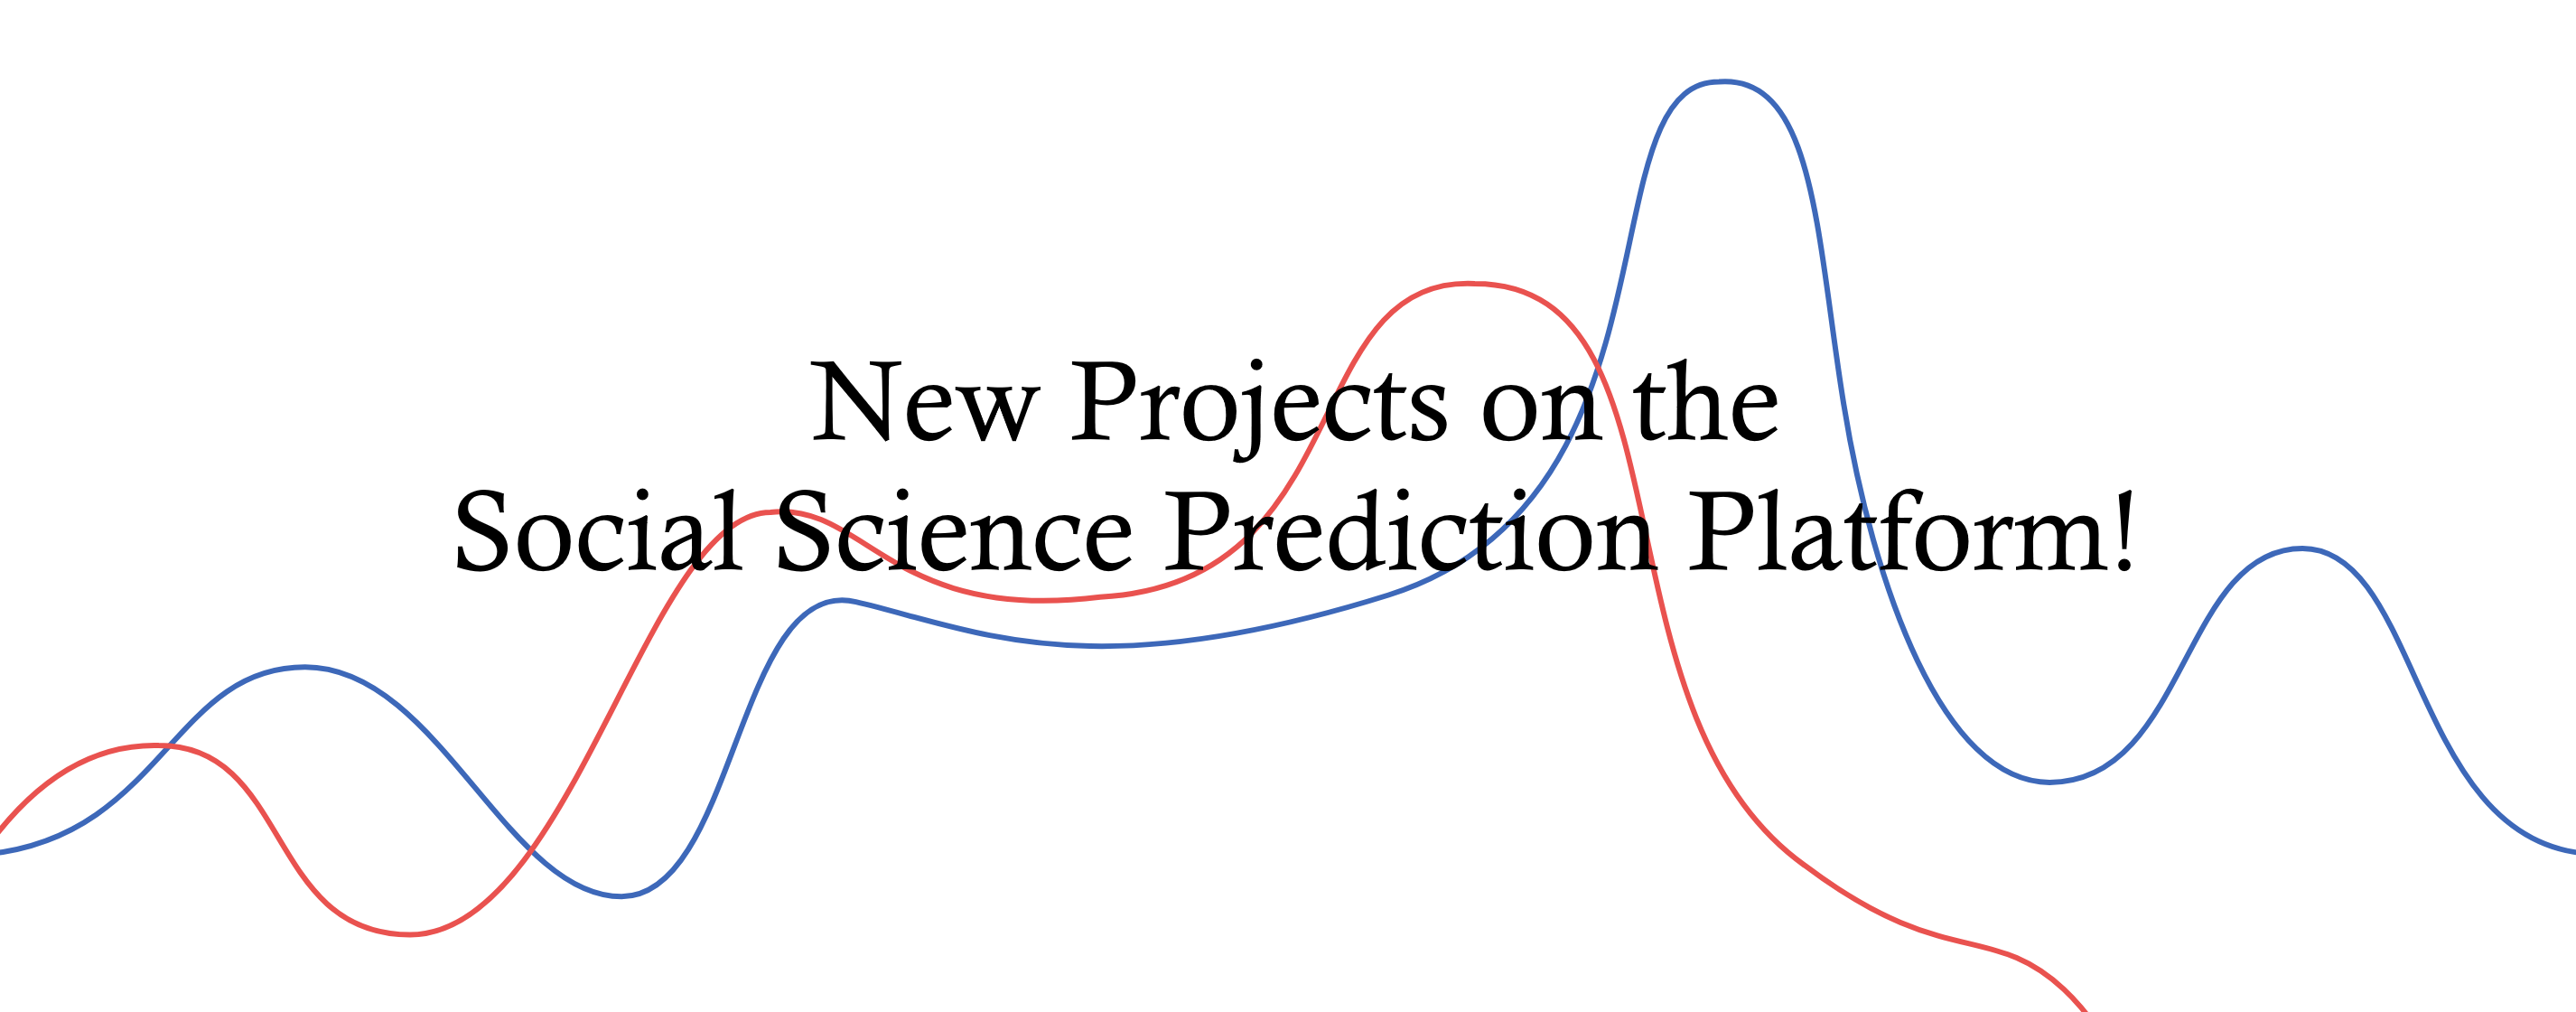 Banner: New Projects on the Social Science Prediction Platform